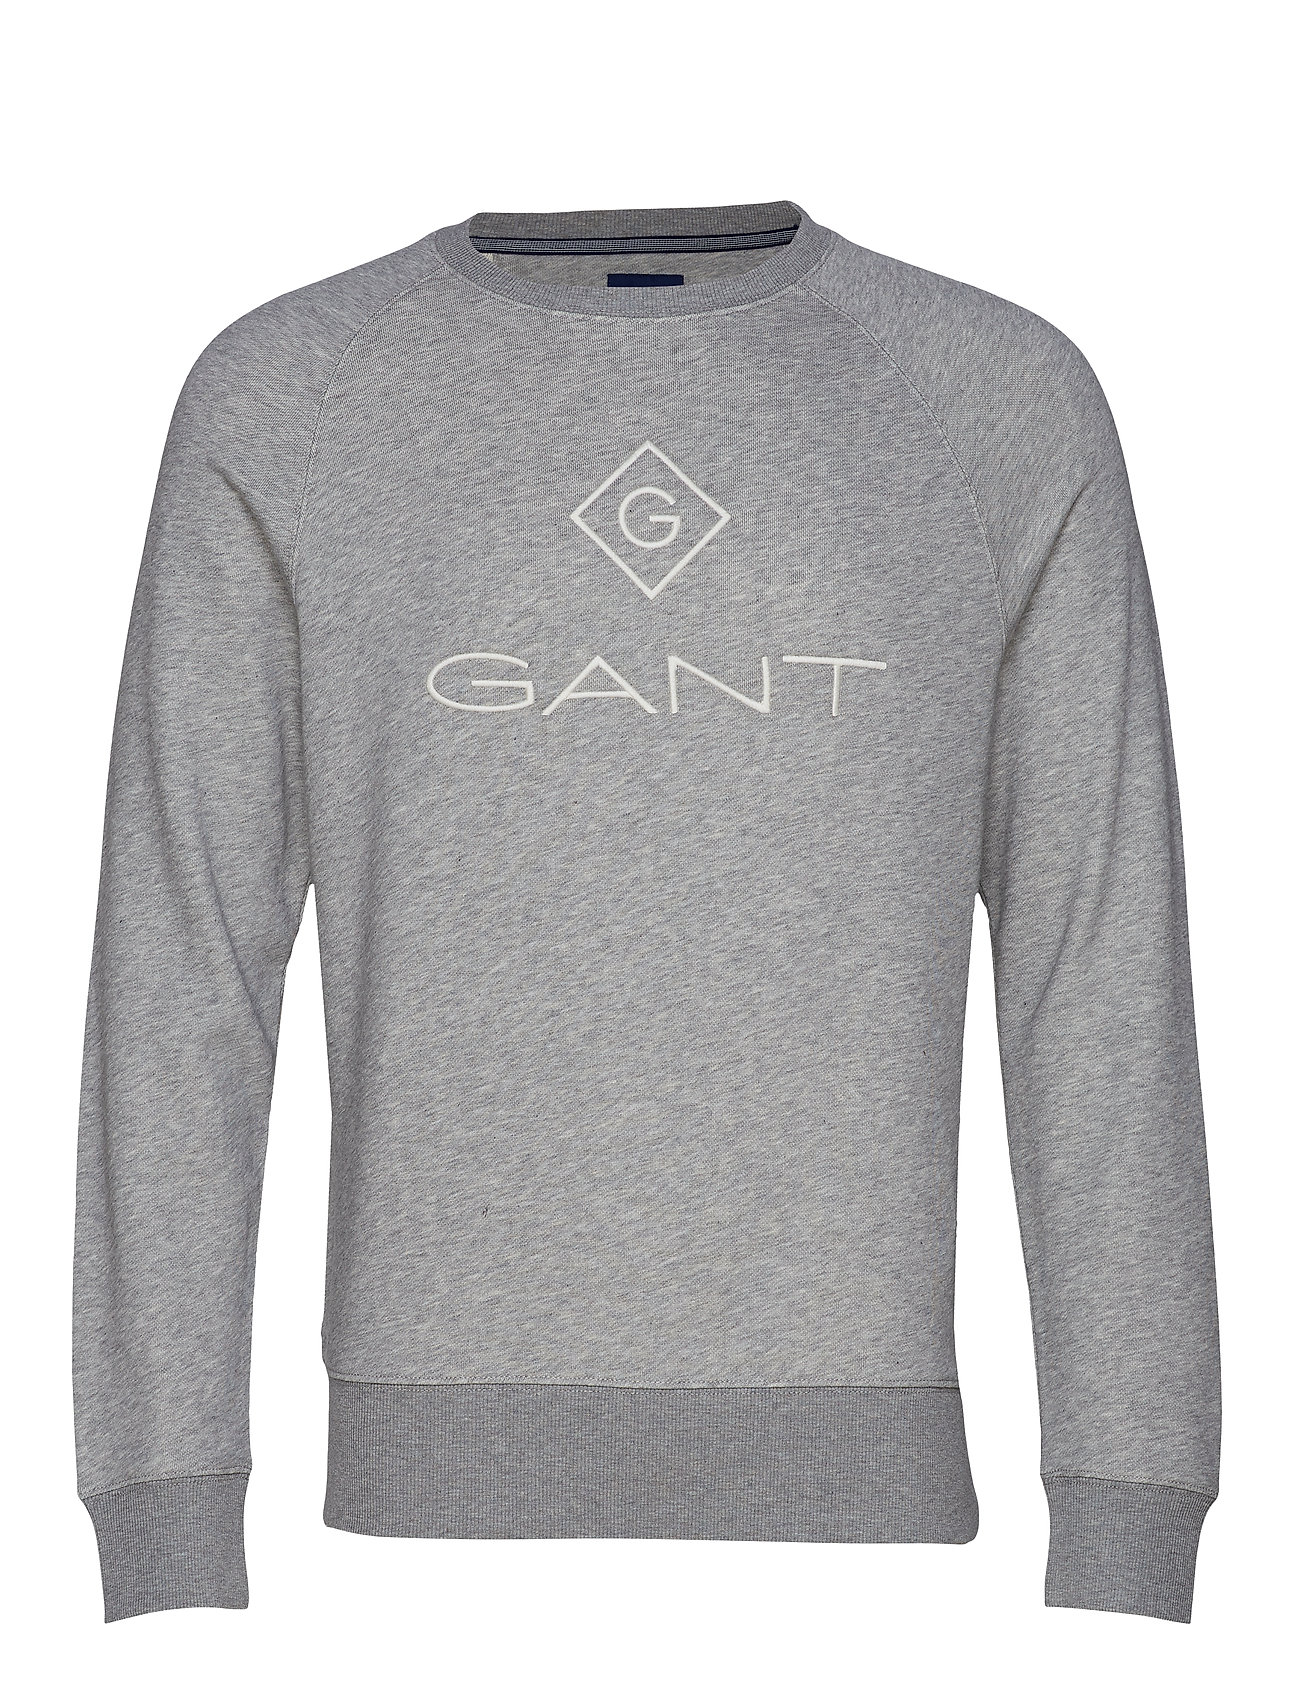 Gant LOCK UP C-NECK SWEAT - GREY MELANGE